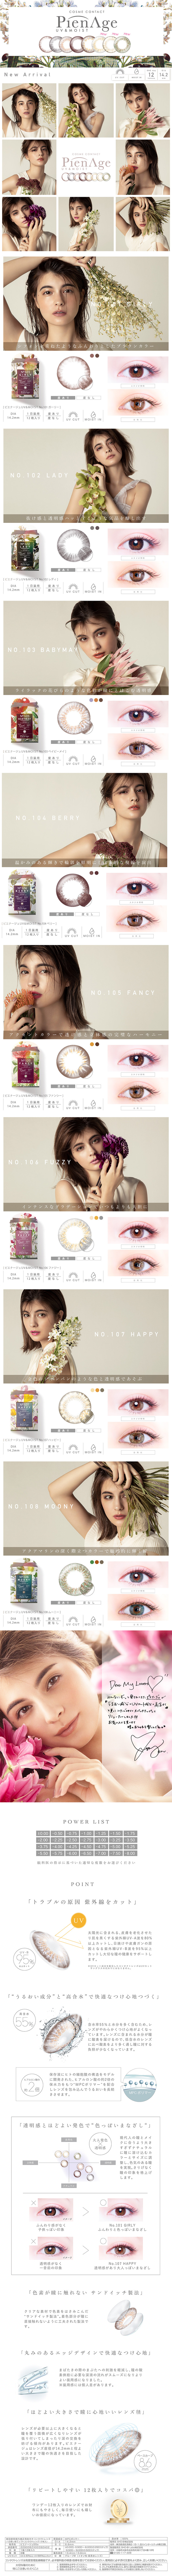 PienAge 55 UV Moist【Color Contacts/1 Day/Prescription, No Prescription/12Lenses】